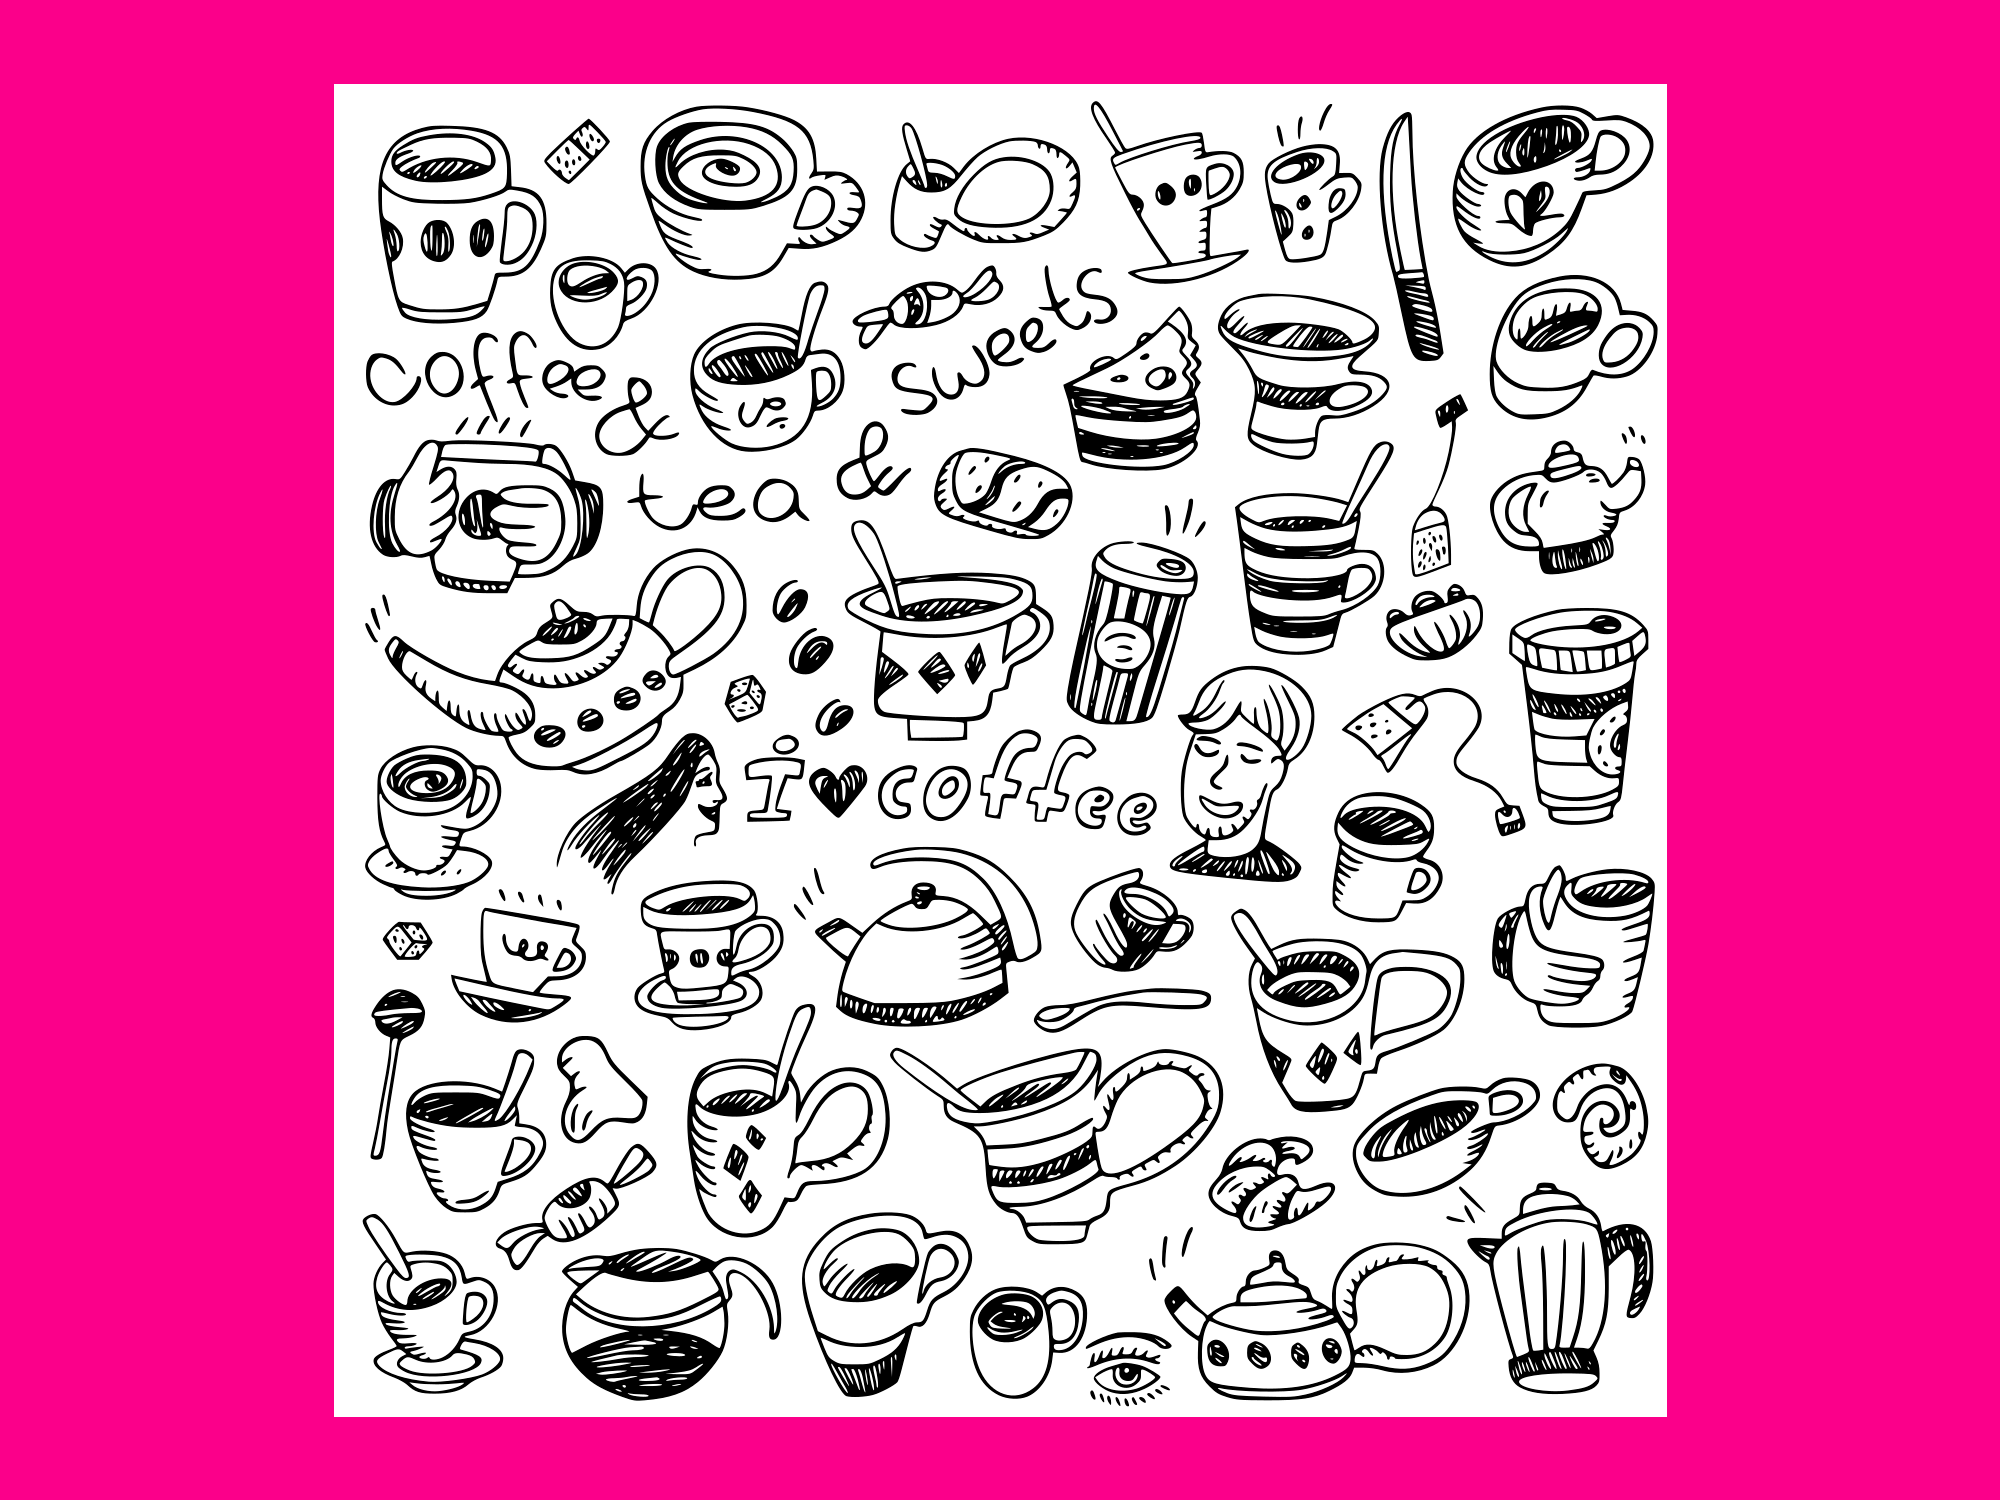 Download Free Coffee Cups Doodles 2 Graphic By Anrasoft Creative Fabrica for Cricut Explore, Silhouette and other cutting machines.